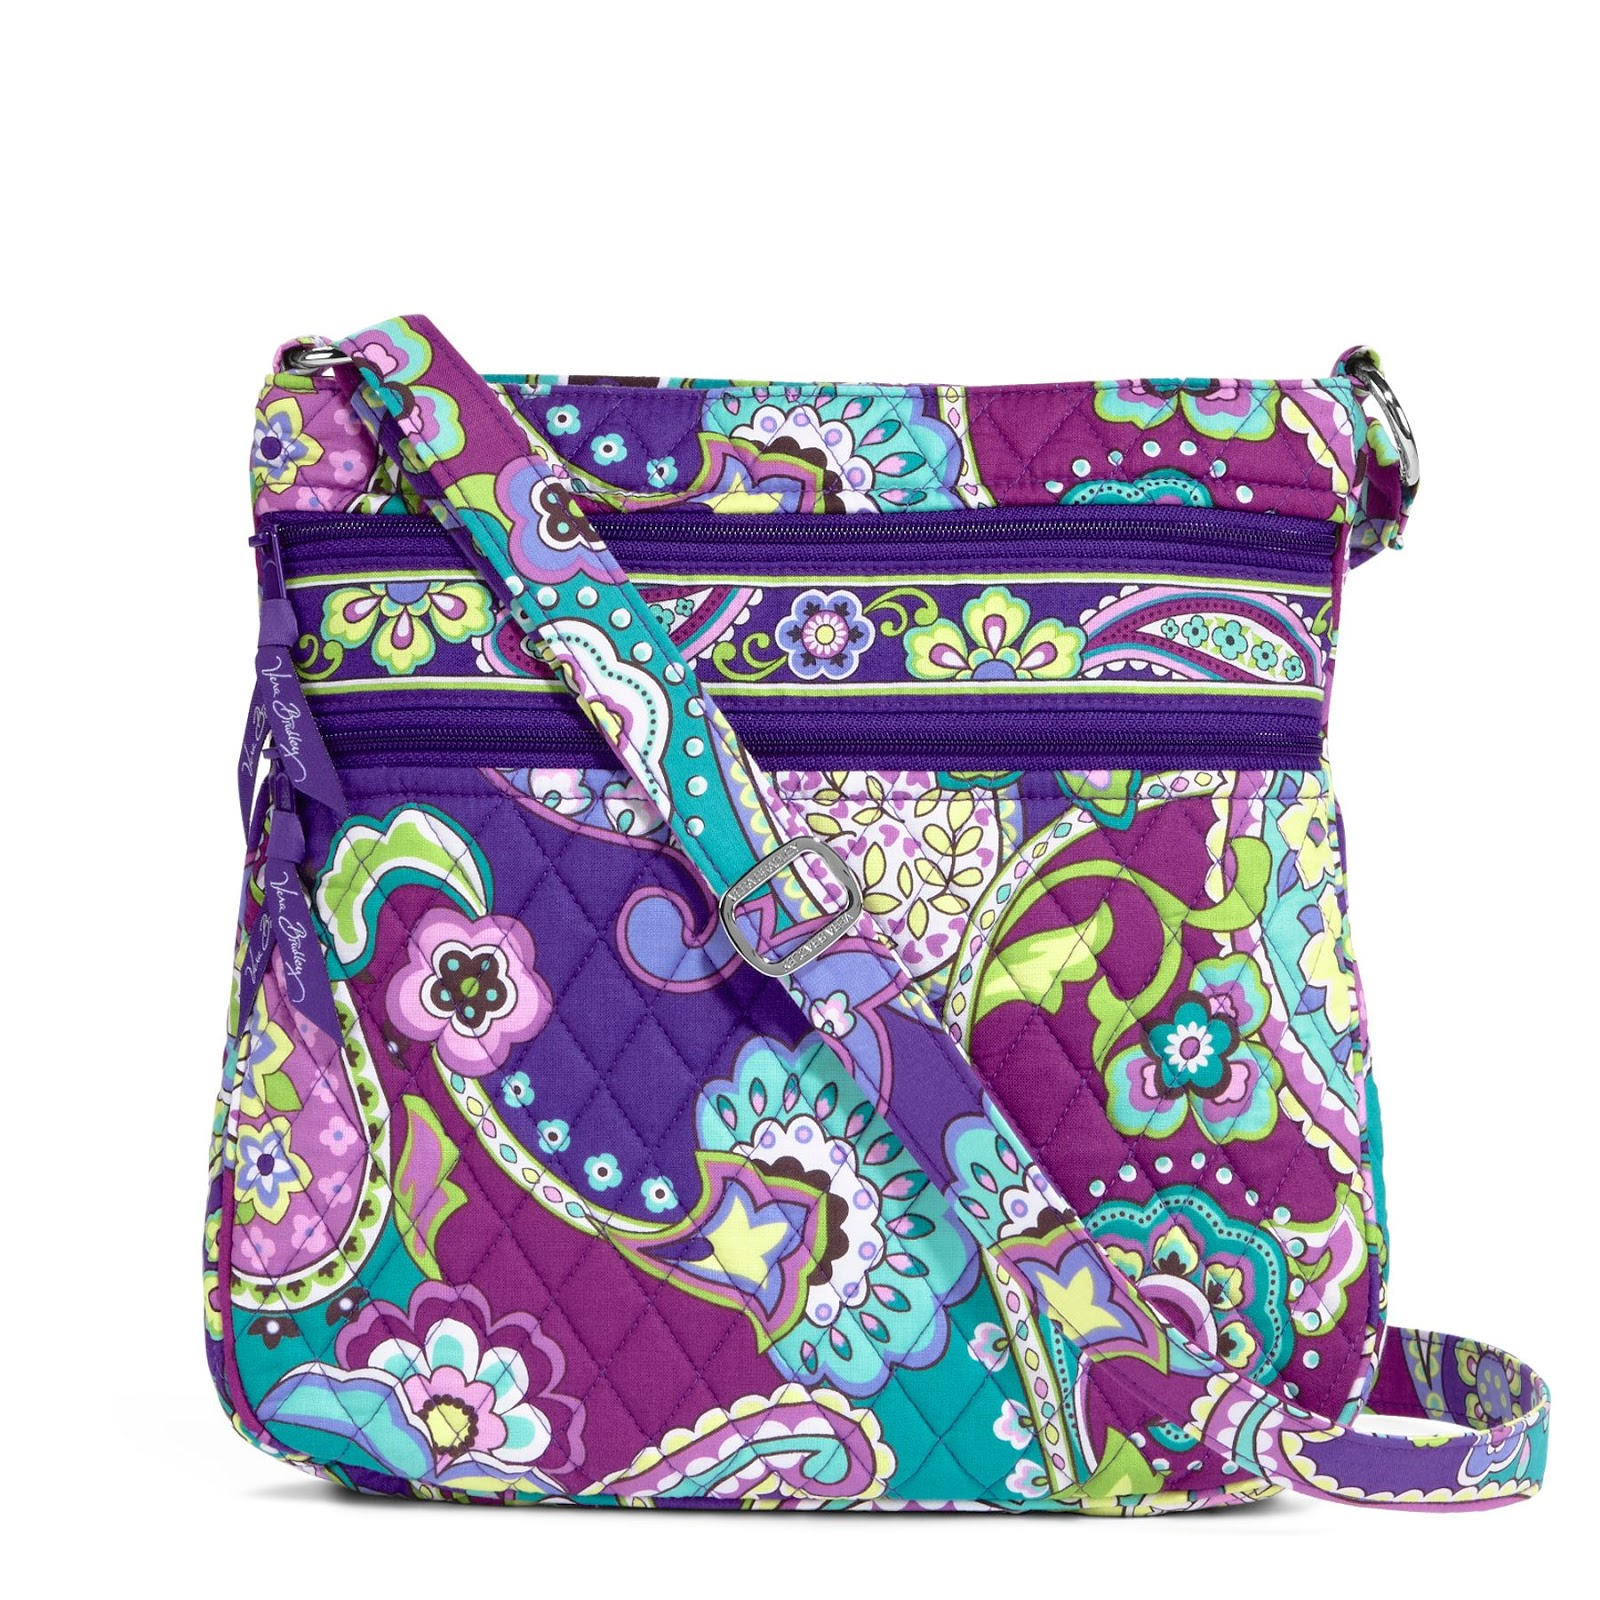 If You Aren T A Fan Of The Color Combination Could Always Go With Midnight Paisley Same Pattern In Black And White